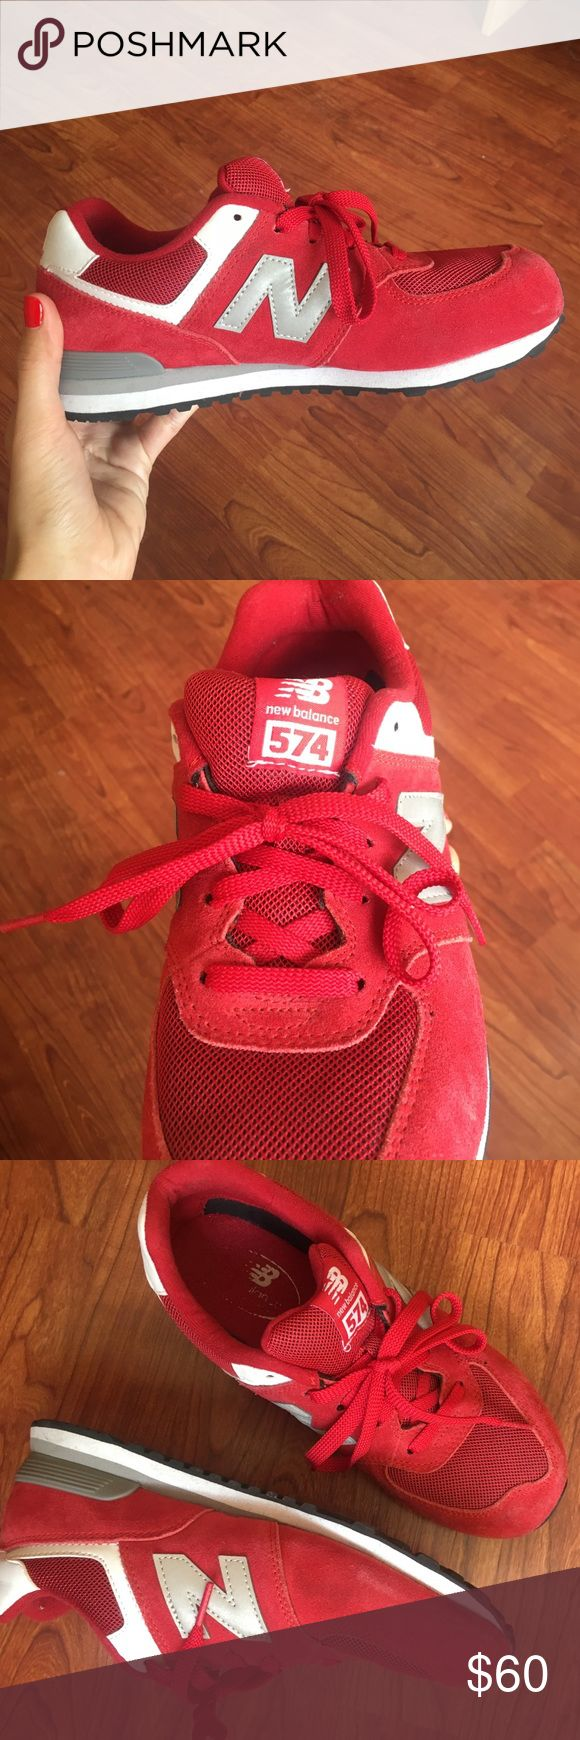 New Balance Red 574 Worn 5 times, very comfortable and stylish! Bought from a New Balance store in Spain #newbalance #red #redsneakers #shoes #sneakerhead #sneaker #sneakers #comfy #comfortable New Balance Shoes Sneakers